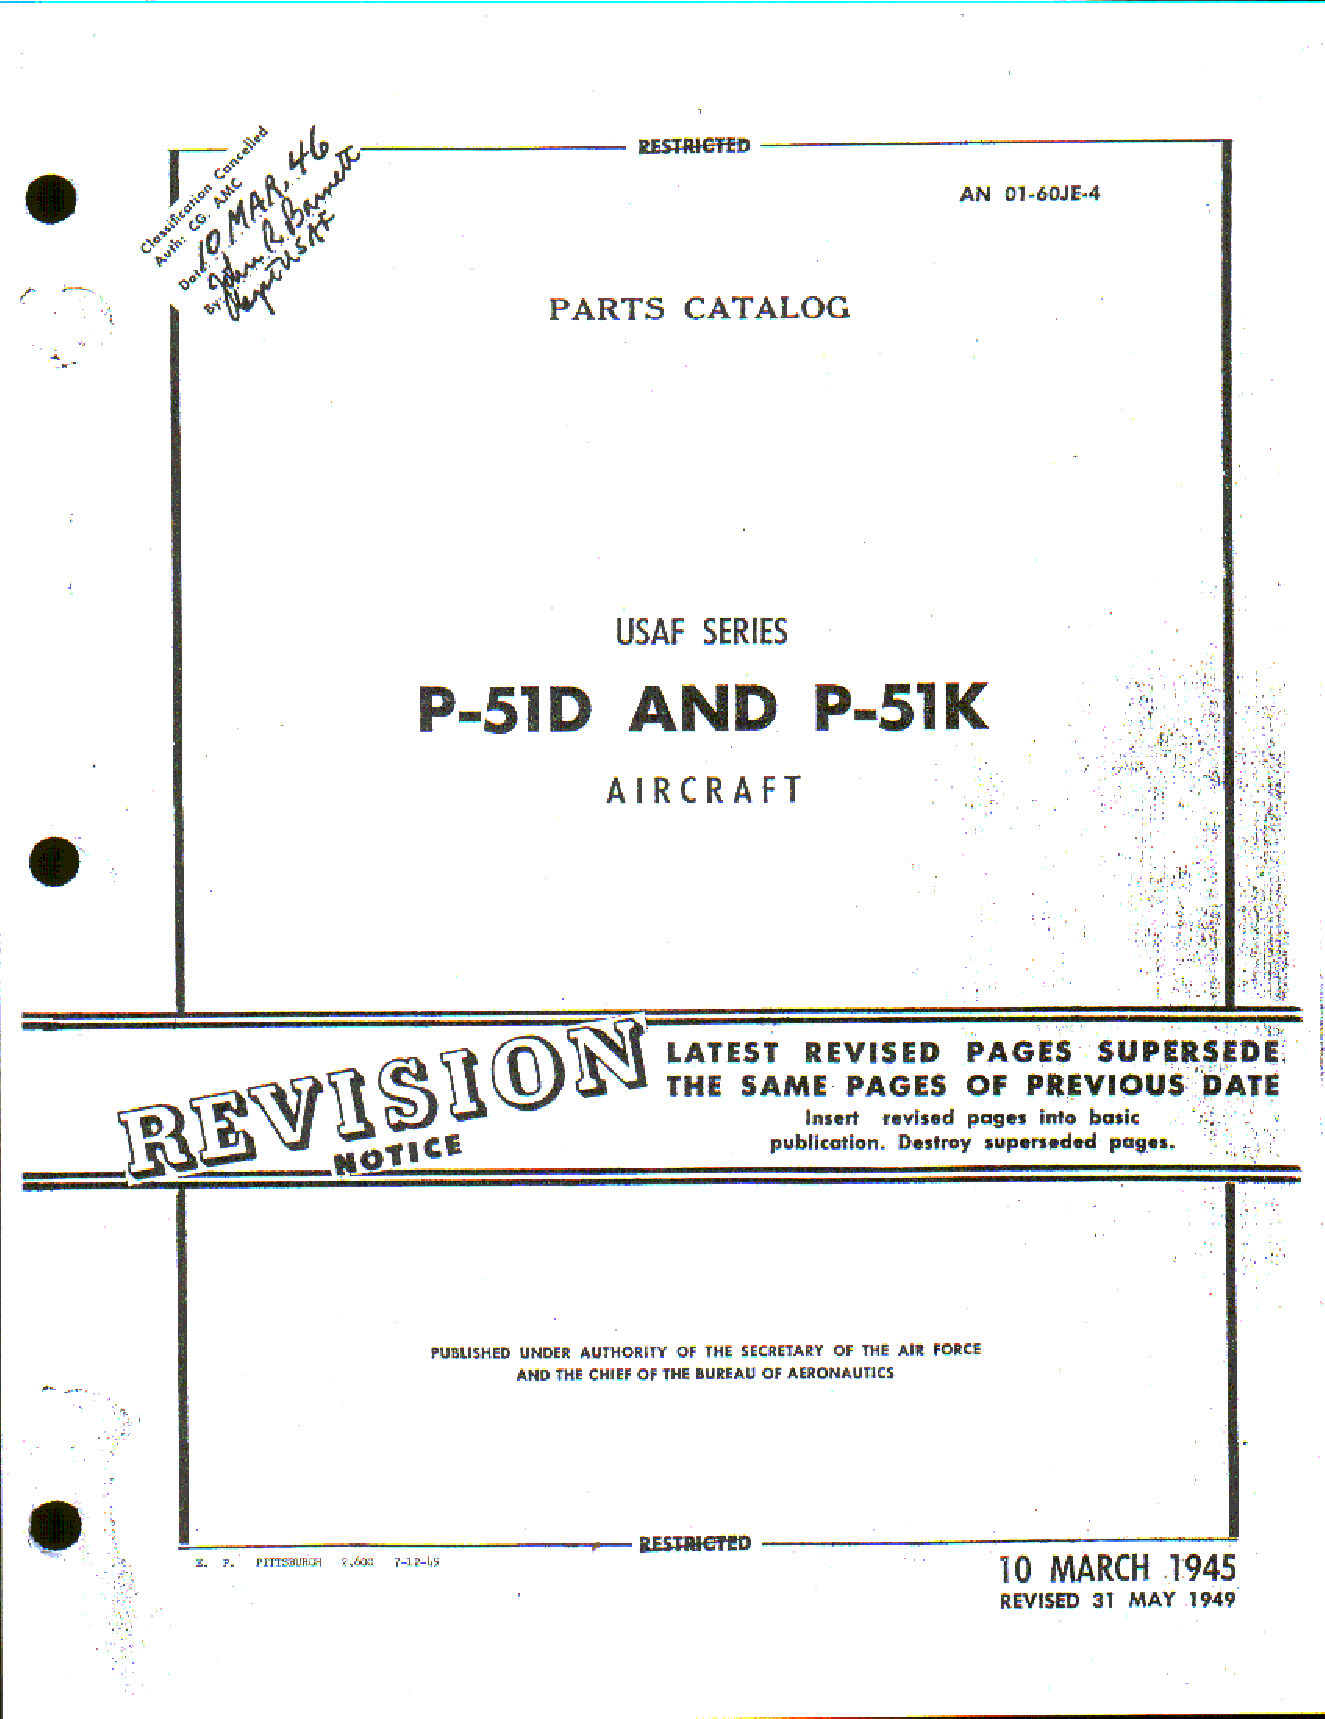 Sample page 1 from AirCorps Library document: Parts Catalog for P-51D and P-51K Aircraft